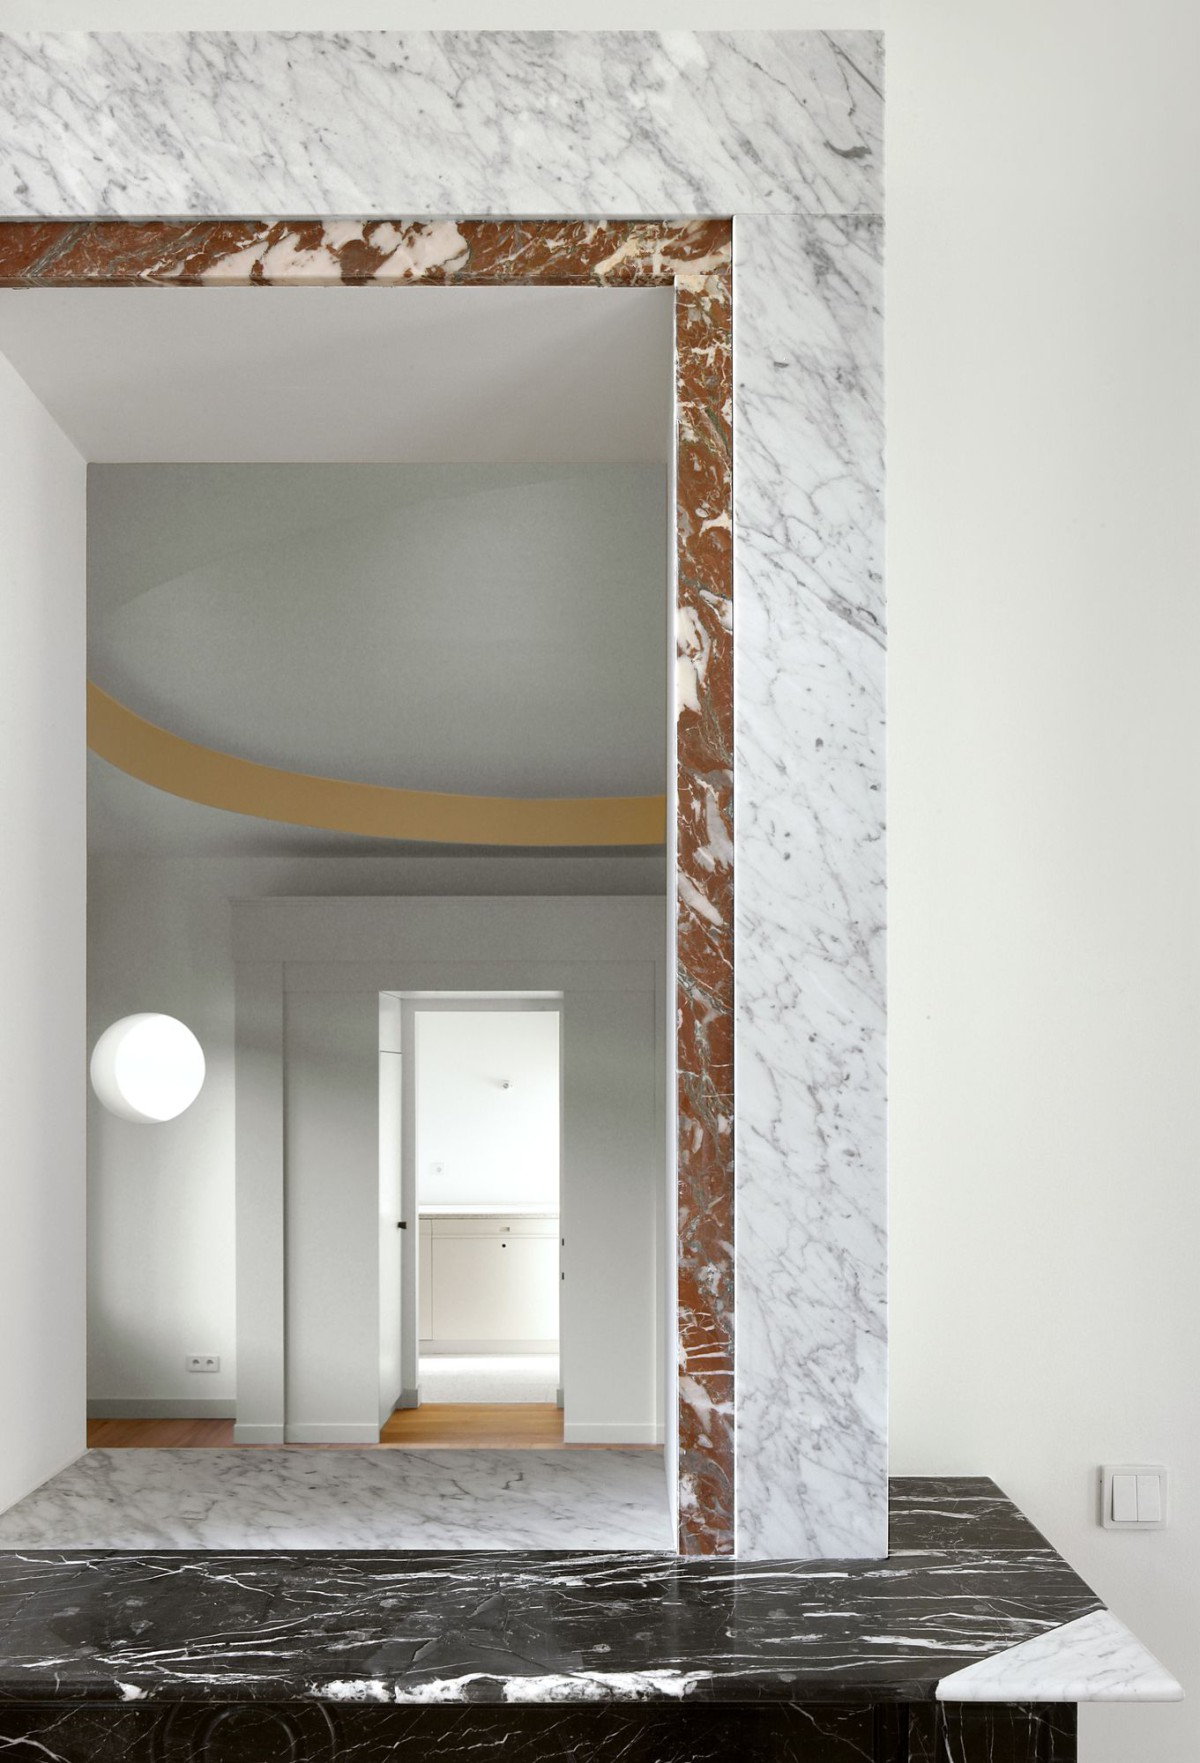 Bovenbouw Architectuur . Refurbishment of 3 historical buildings . Antwerp (7)